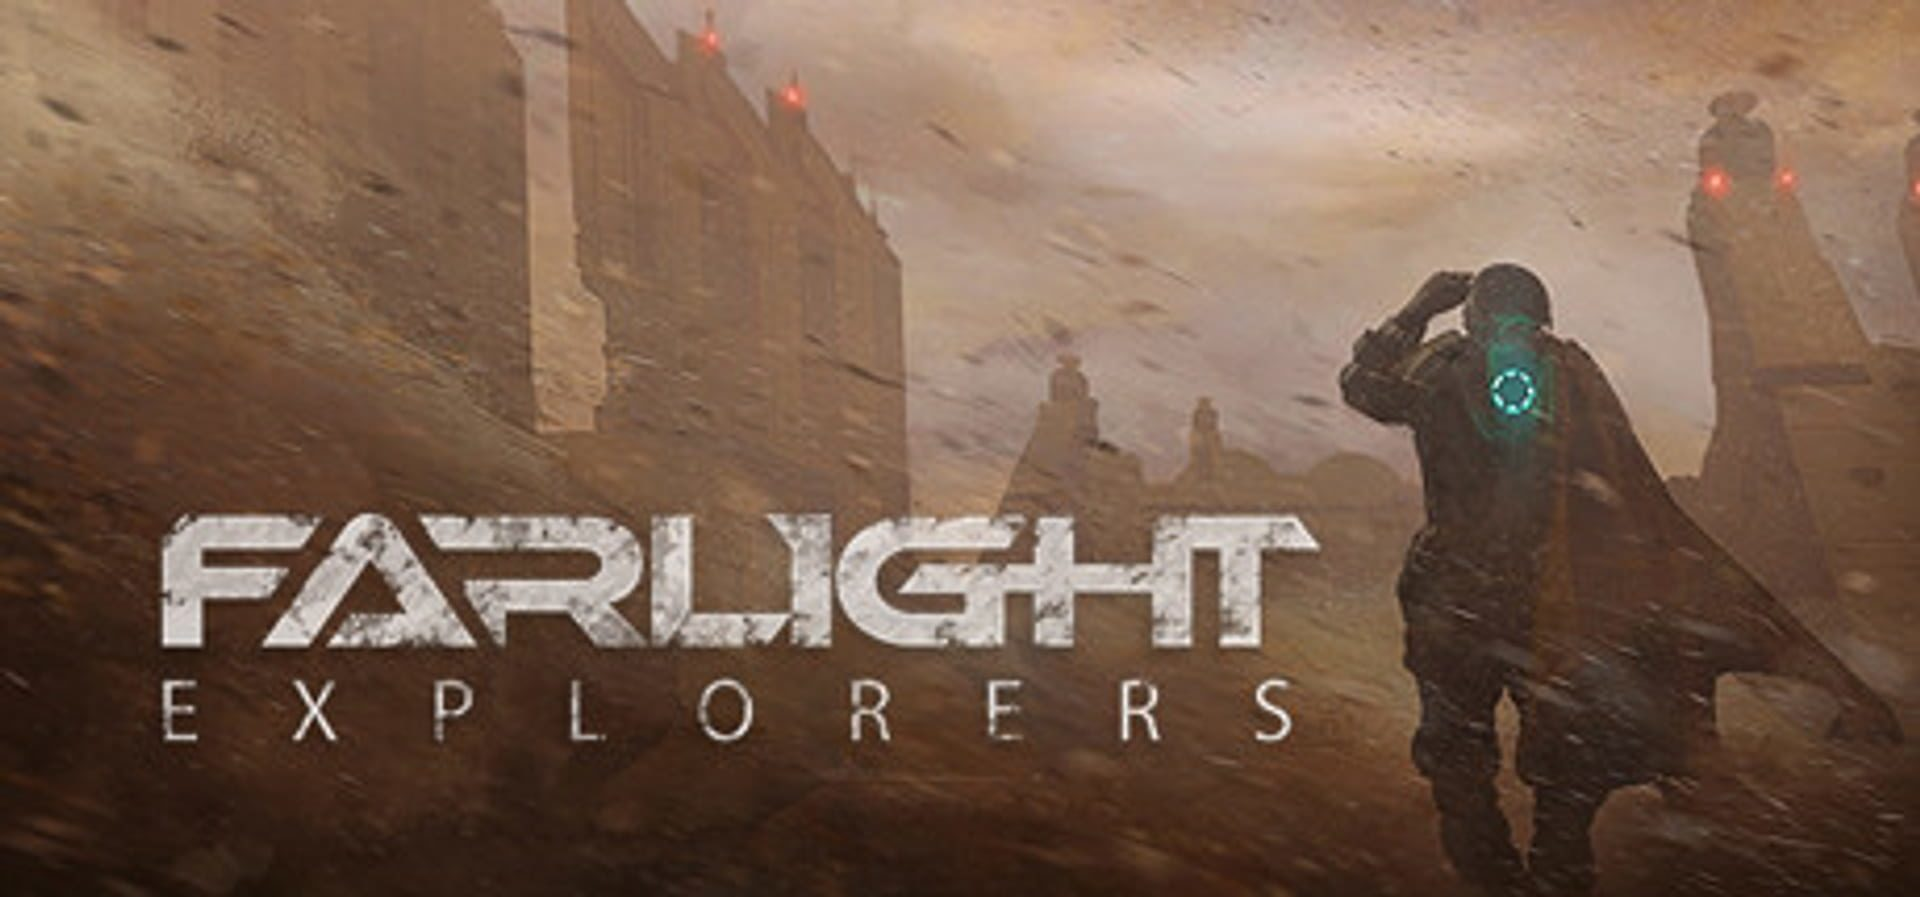 buy Farlight Explorers cd key for pc platform